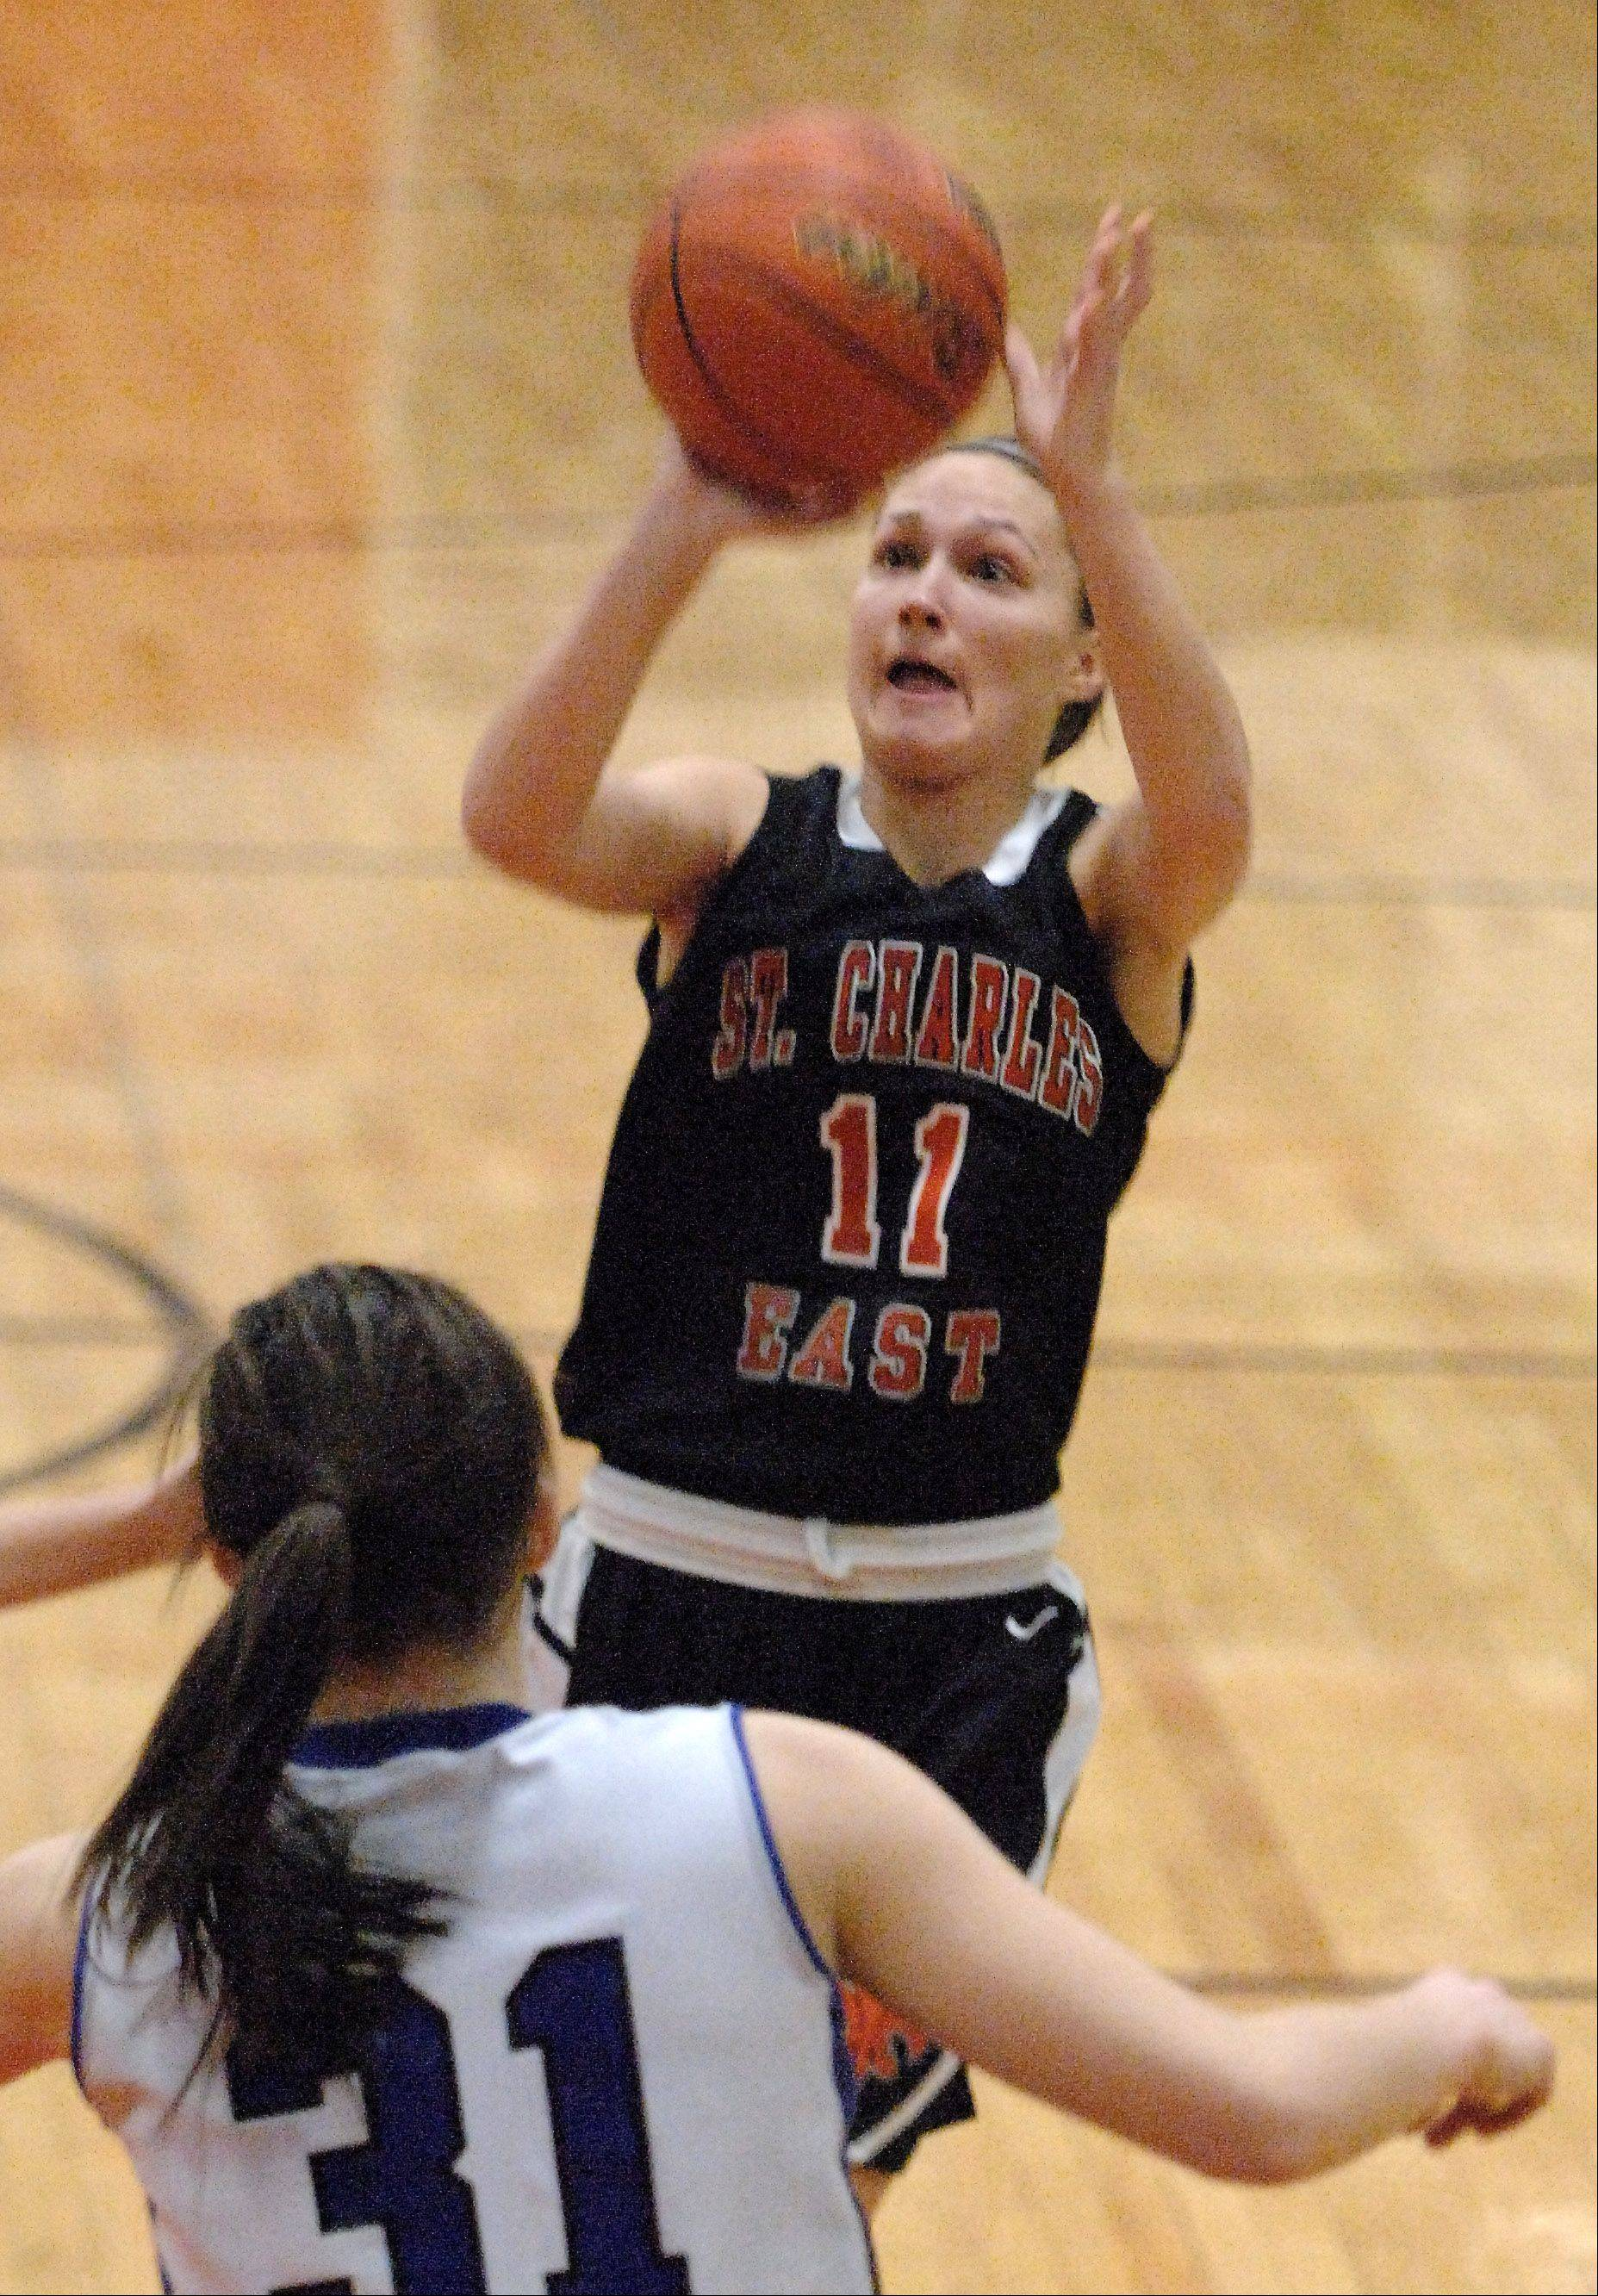 St. Charles East's Carly Pottle scores over Geneva's Sami Pawlak.